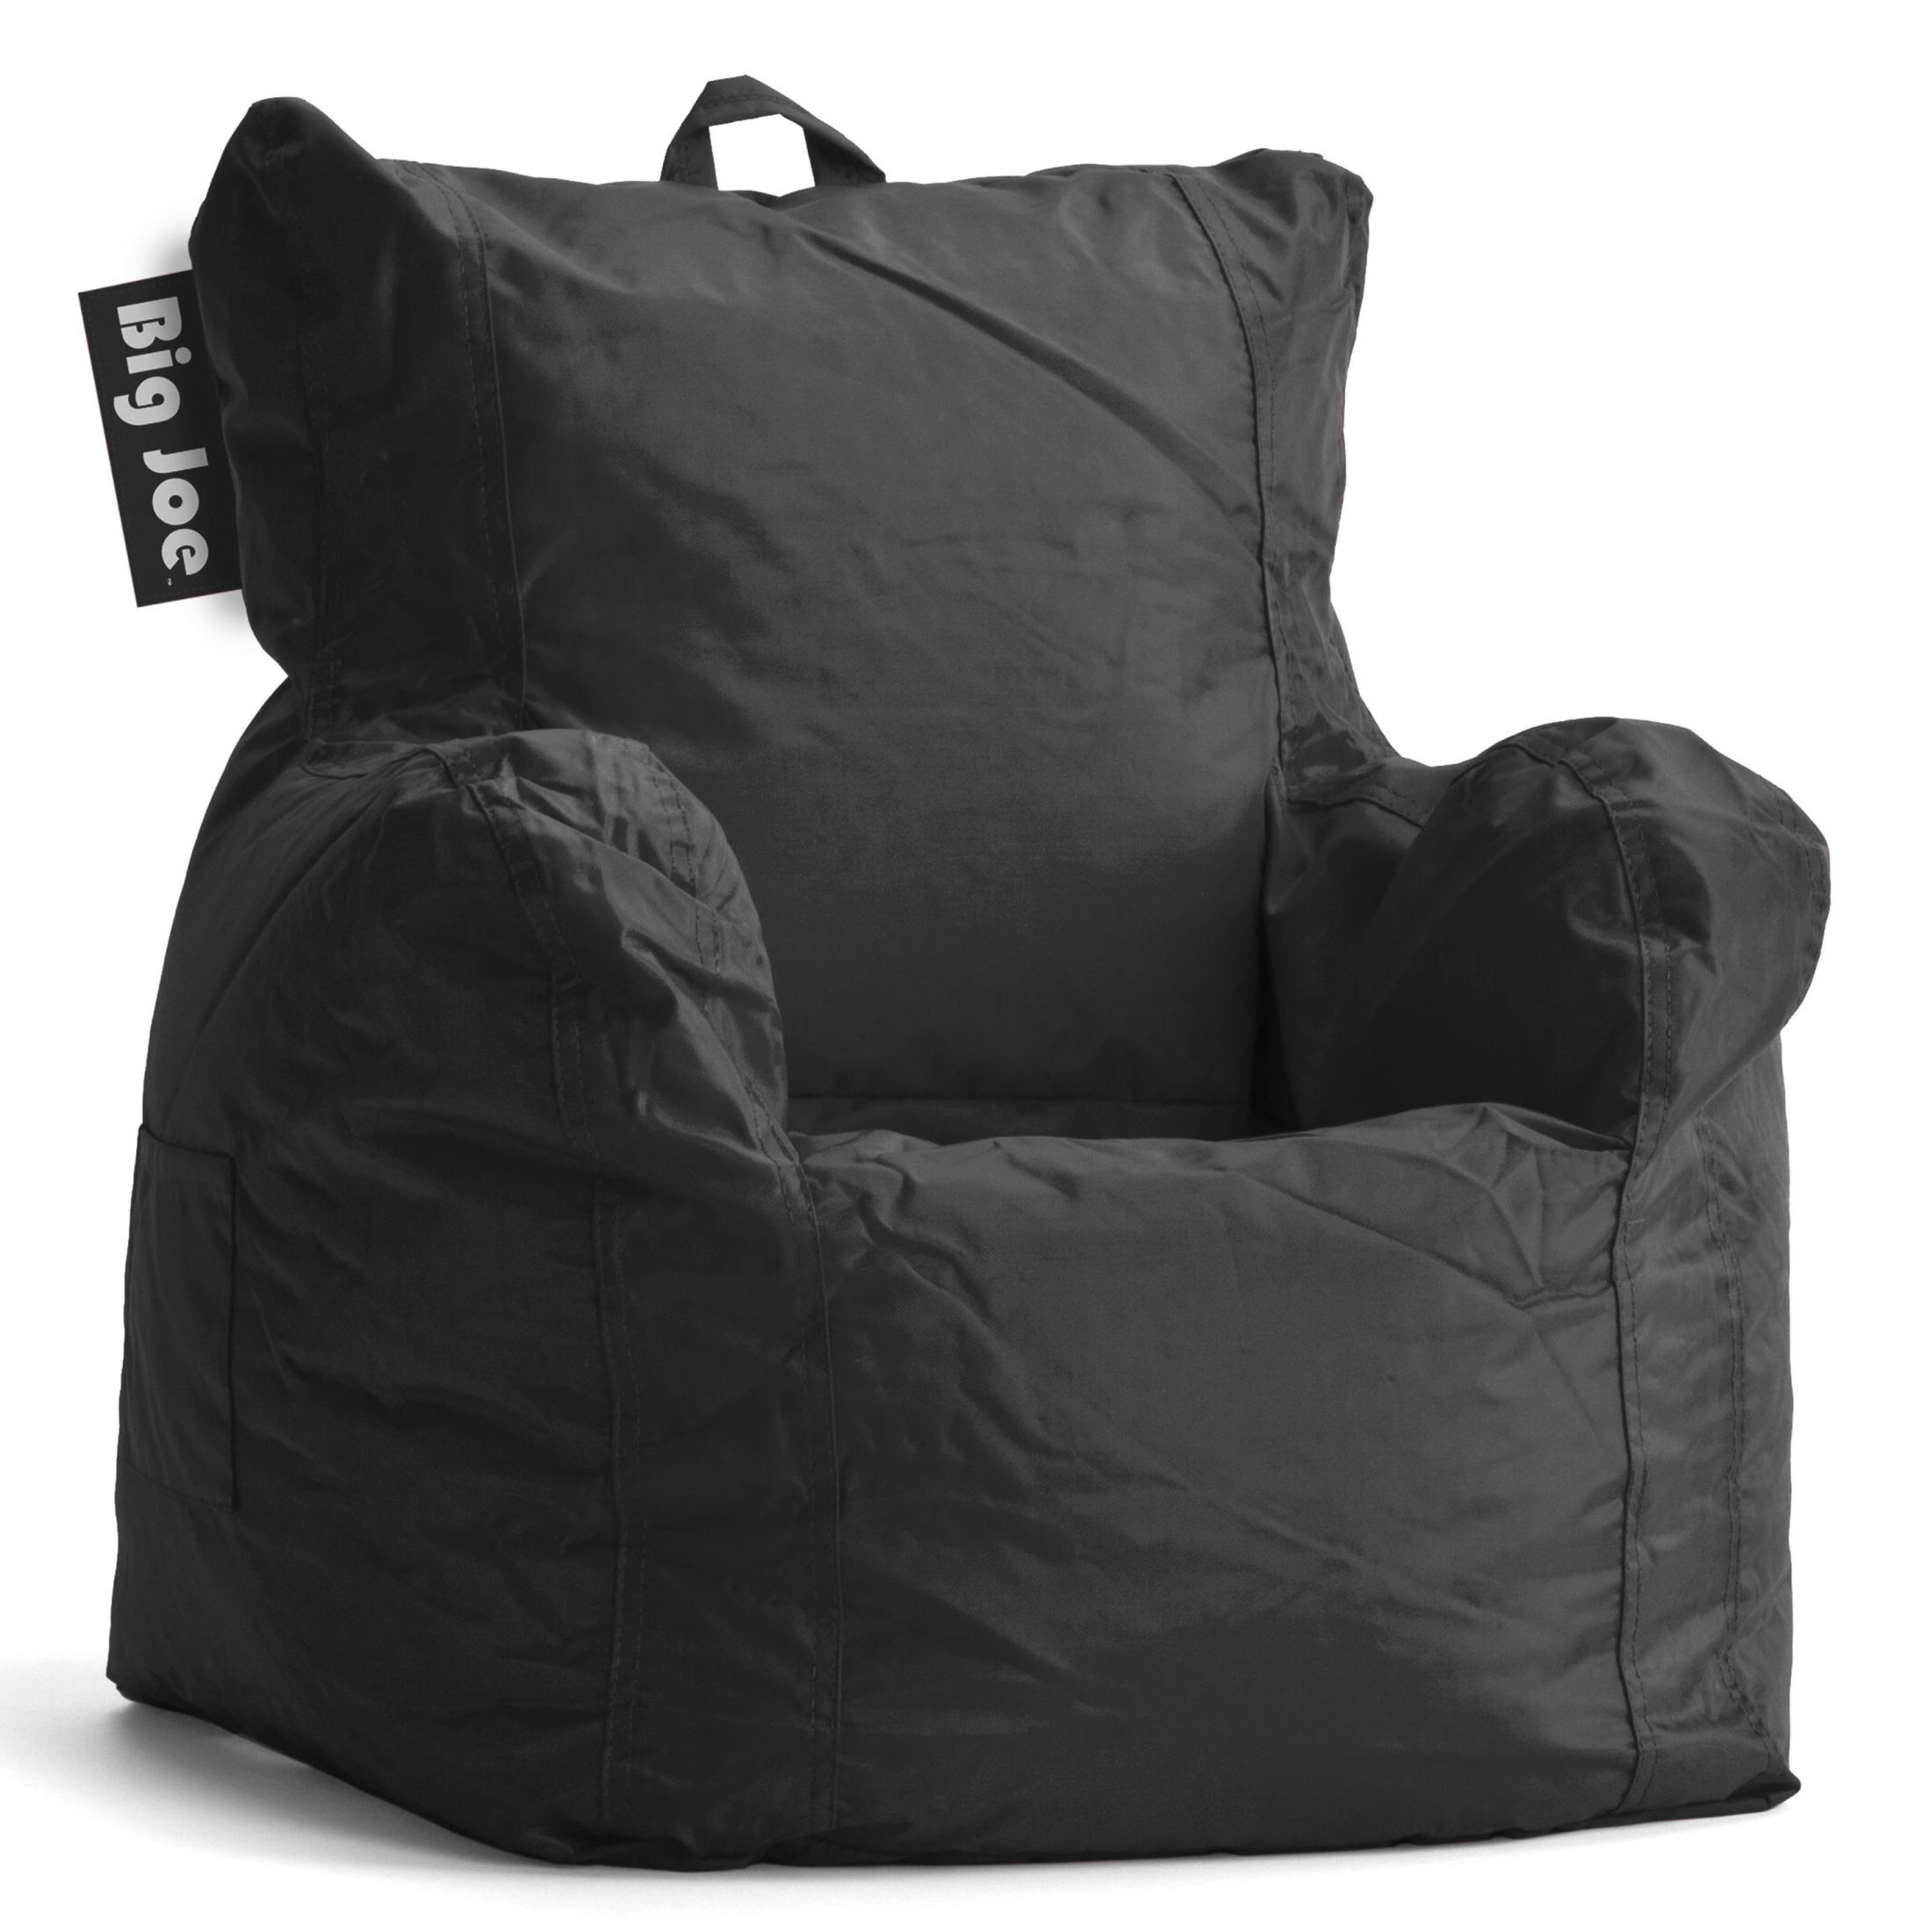 big joe cuddle chair best folding boat deck chairs stretch limo black smartmax from